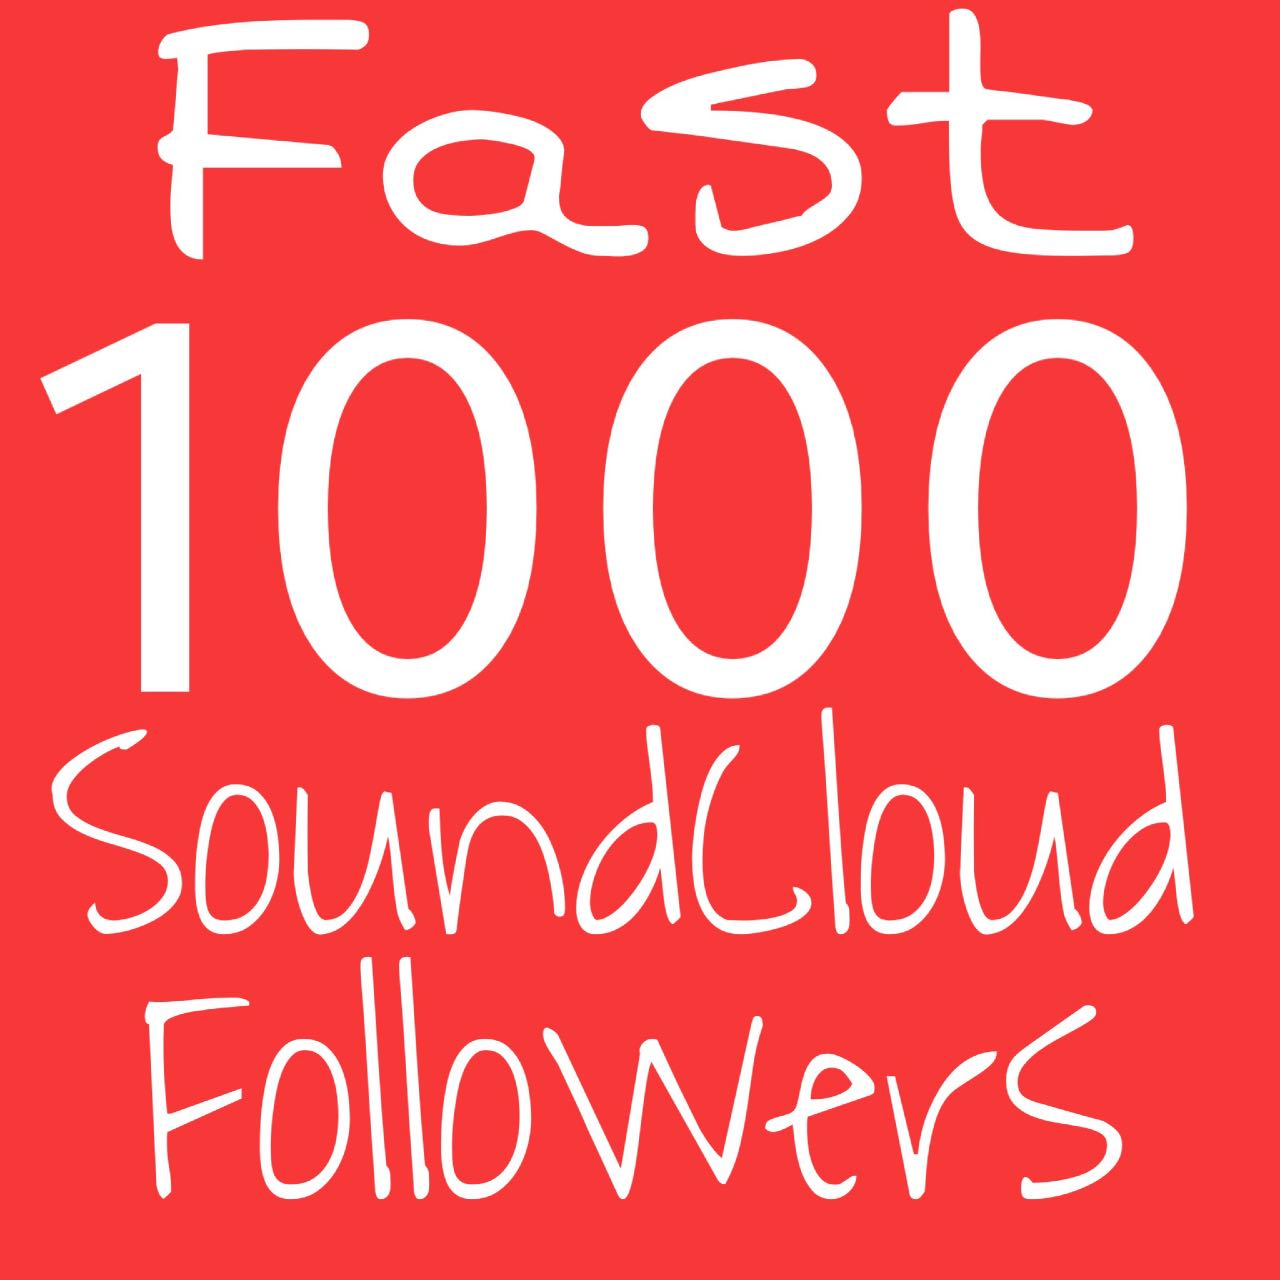 Get Instant 1000+ Soundcloud Followers and 200 Donwloads